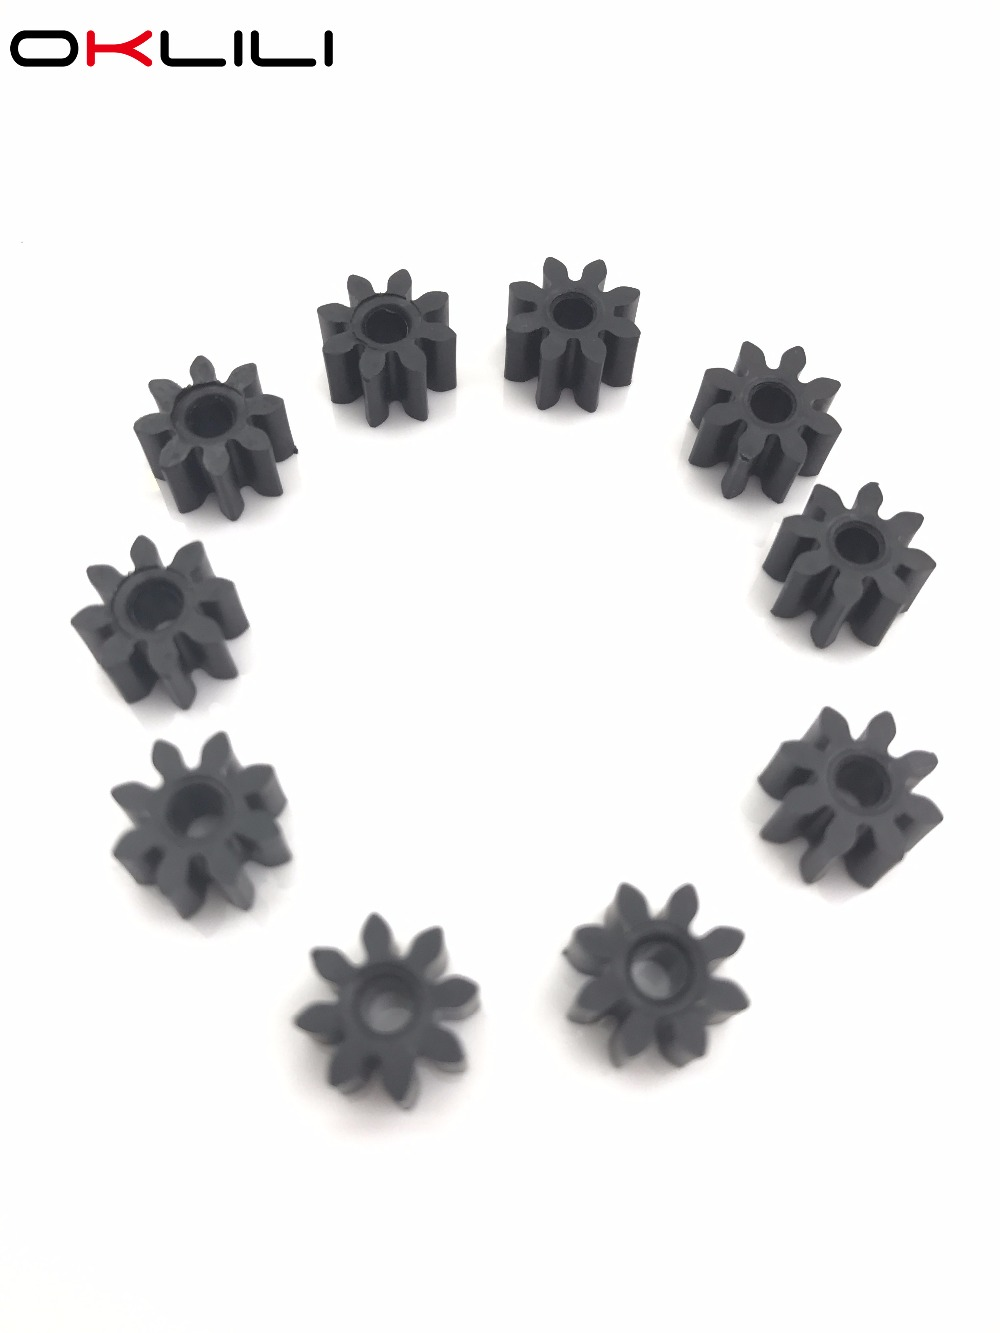 10X Feed Feeding Delivery Roller Gear 8T For HP 920 6000 6500 6500A 7000 7500 7500A B010 B010A B010b B109 B109a B109c B109q B110